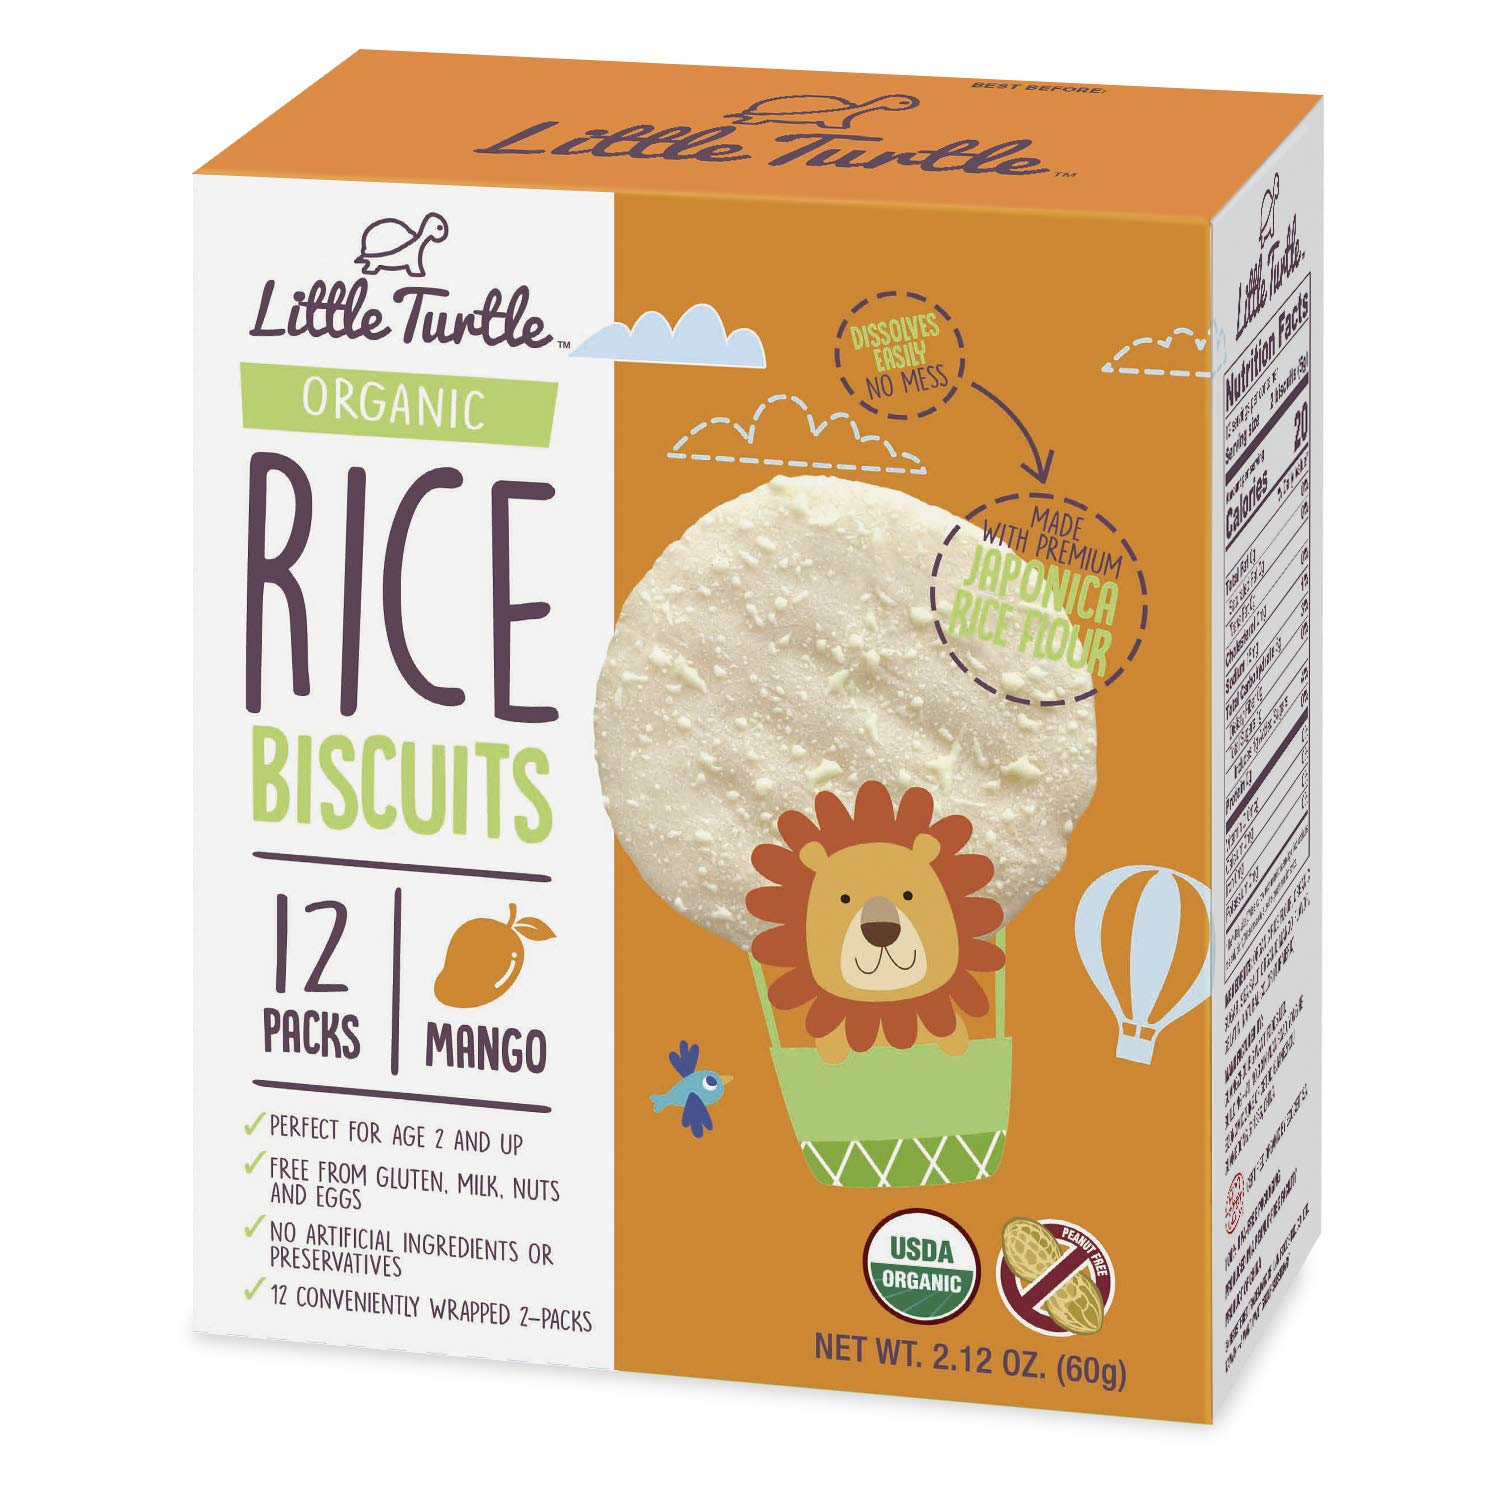 Little Turtle Rice Biscuits, Organic Mango Flavor, 12 wrapped 2 Pack, 4 Count by Little Turtle